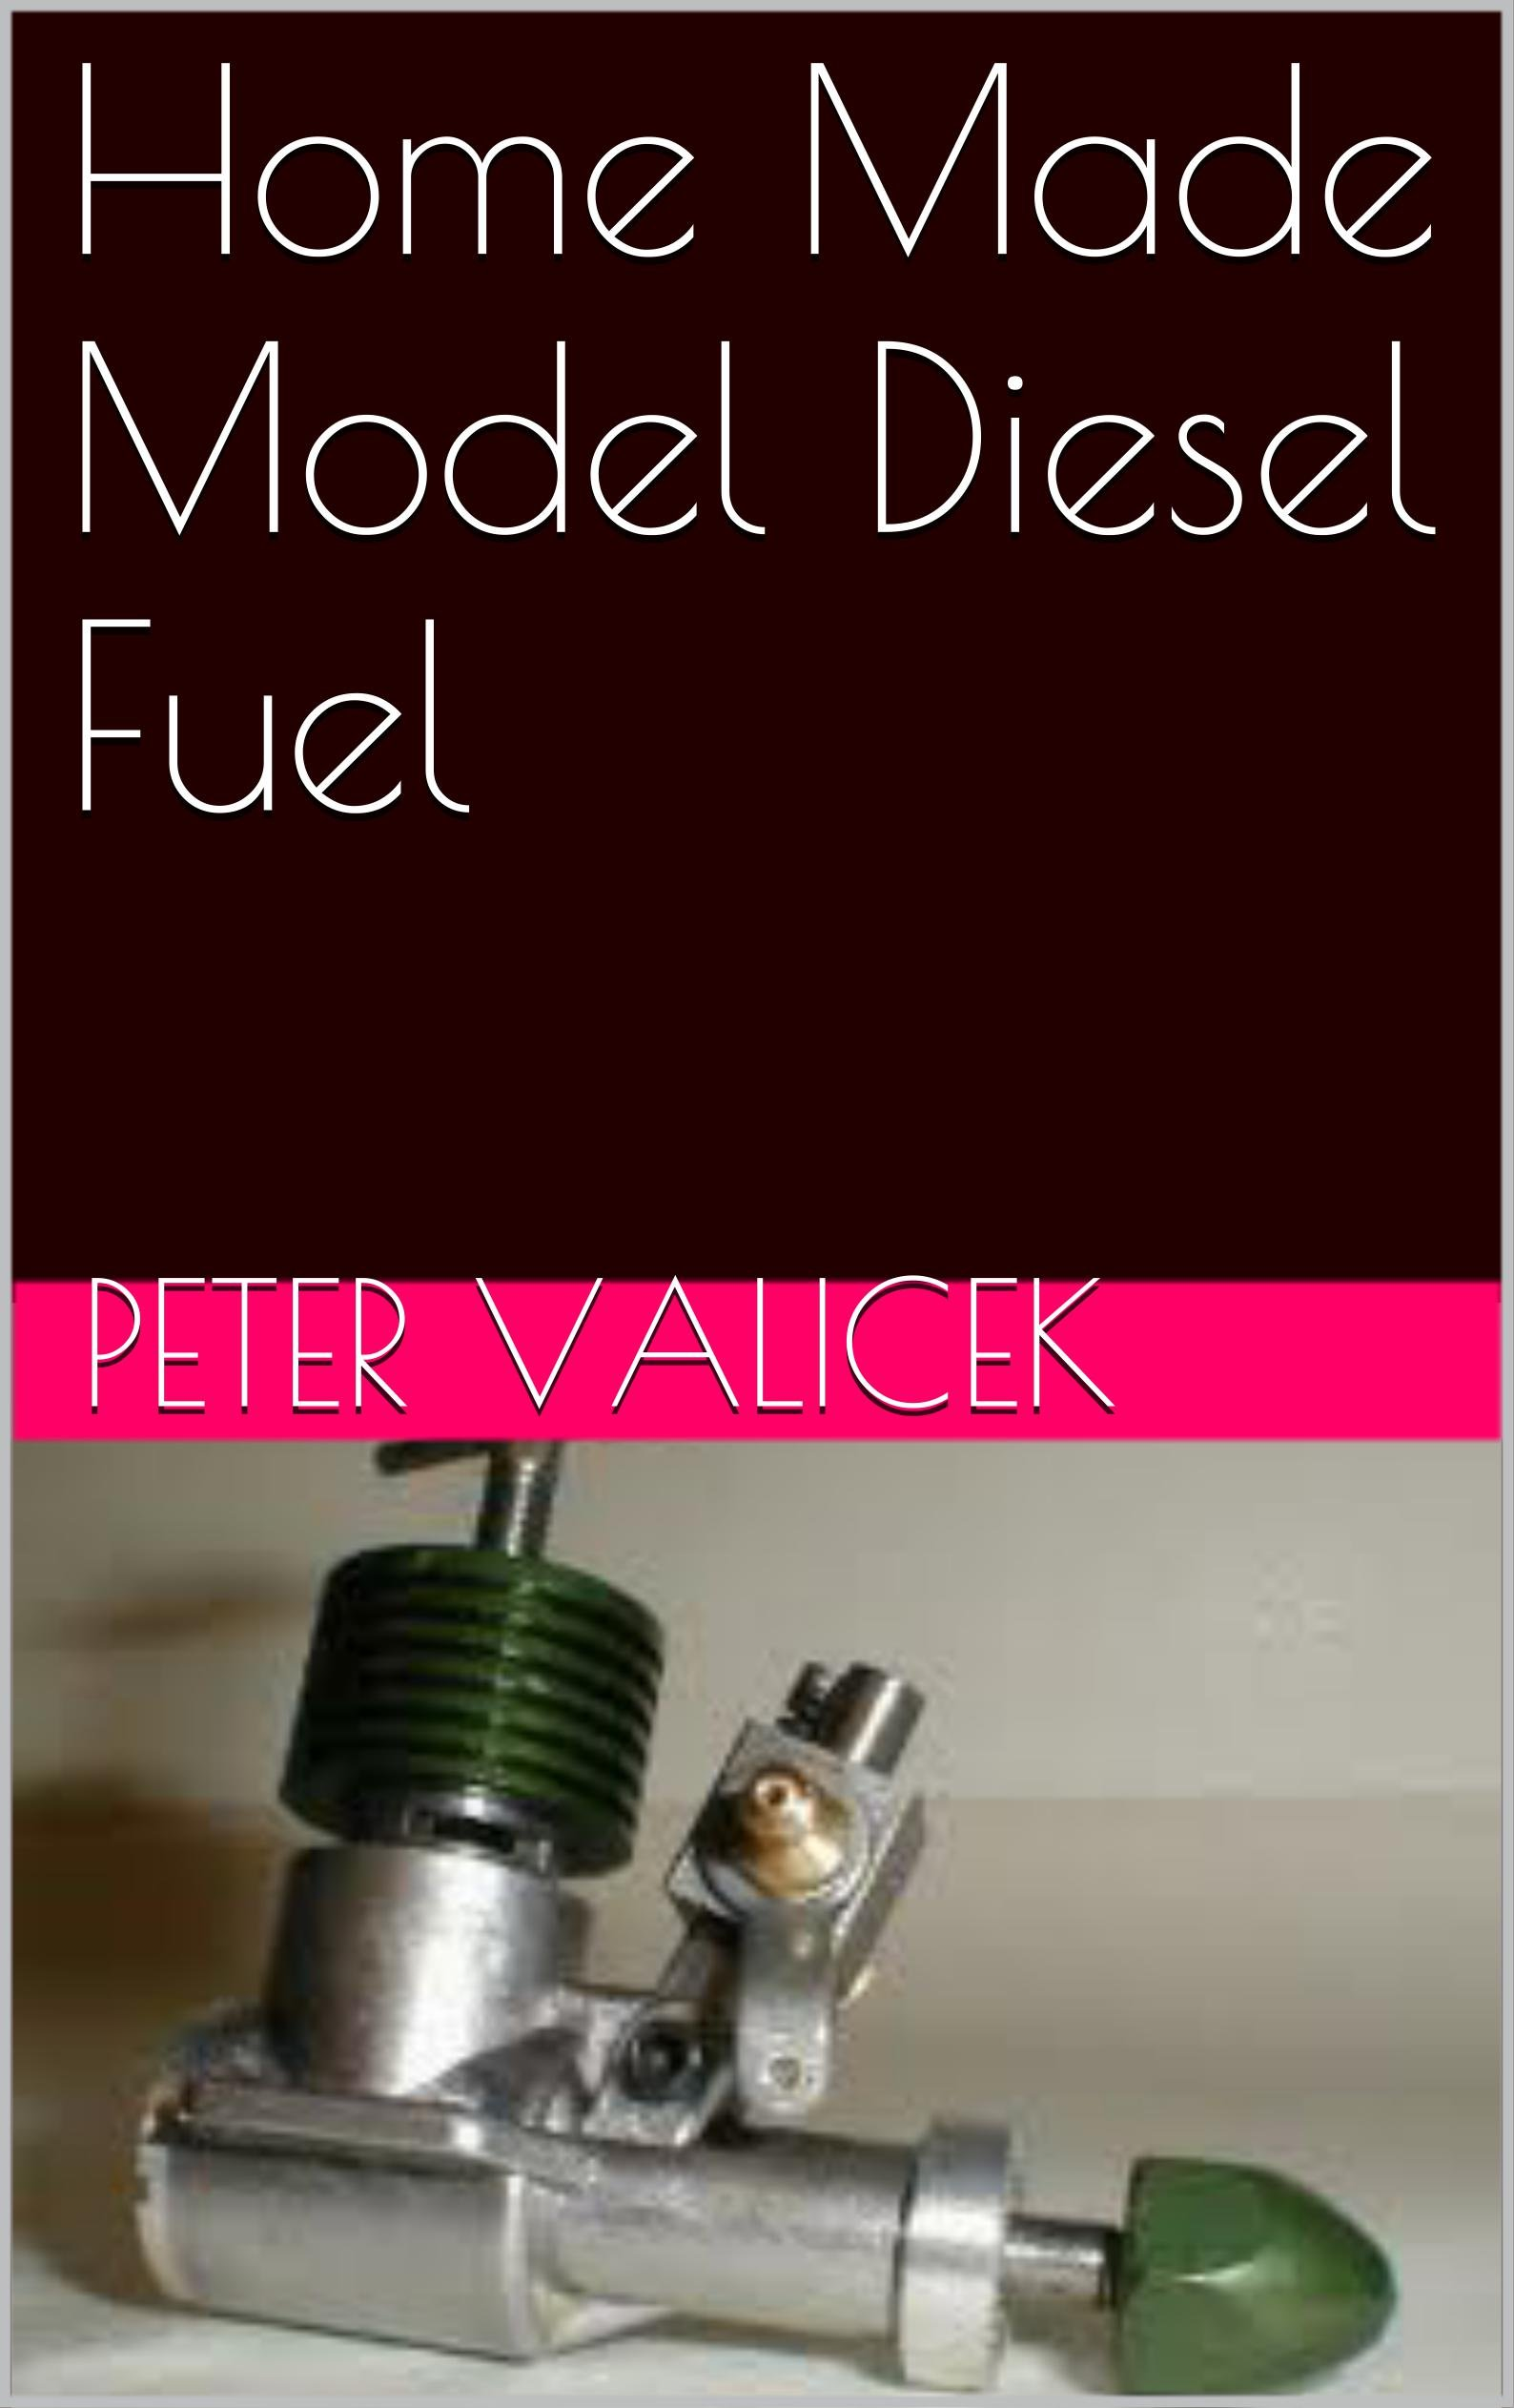 Image OfHome Made Model Diesel Fuel (Model Engine Rebuild Projects) (English Edition)